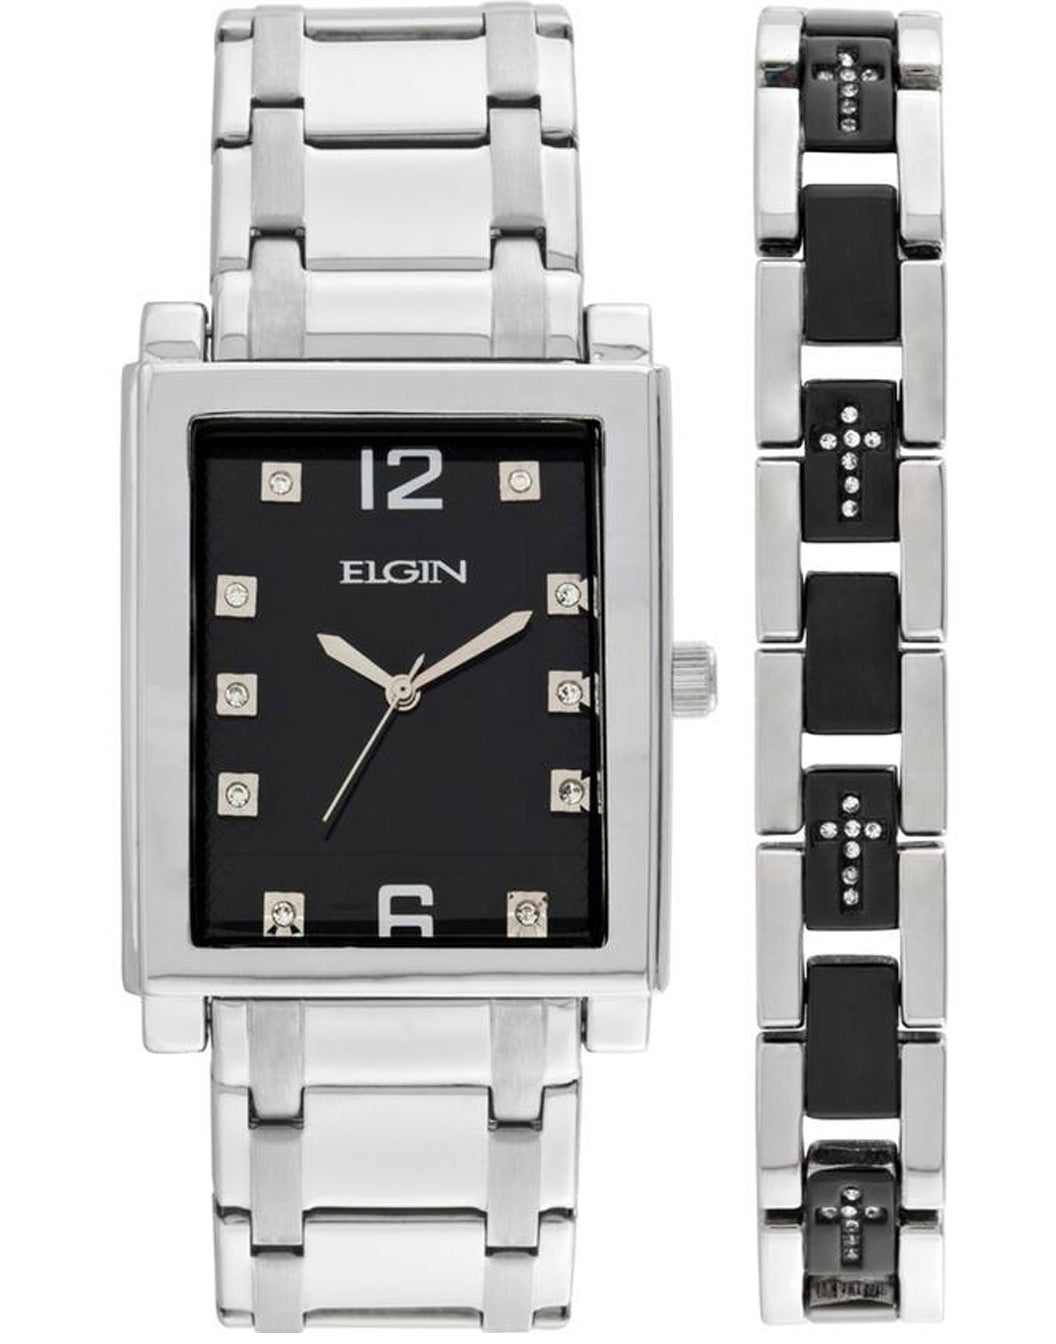 ELGIN Men's Crystal Accent Silver-Tone and Black Watch and Cross Bracelet Set - FG9060ST-L61